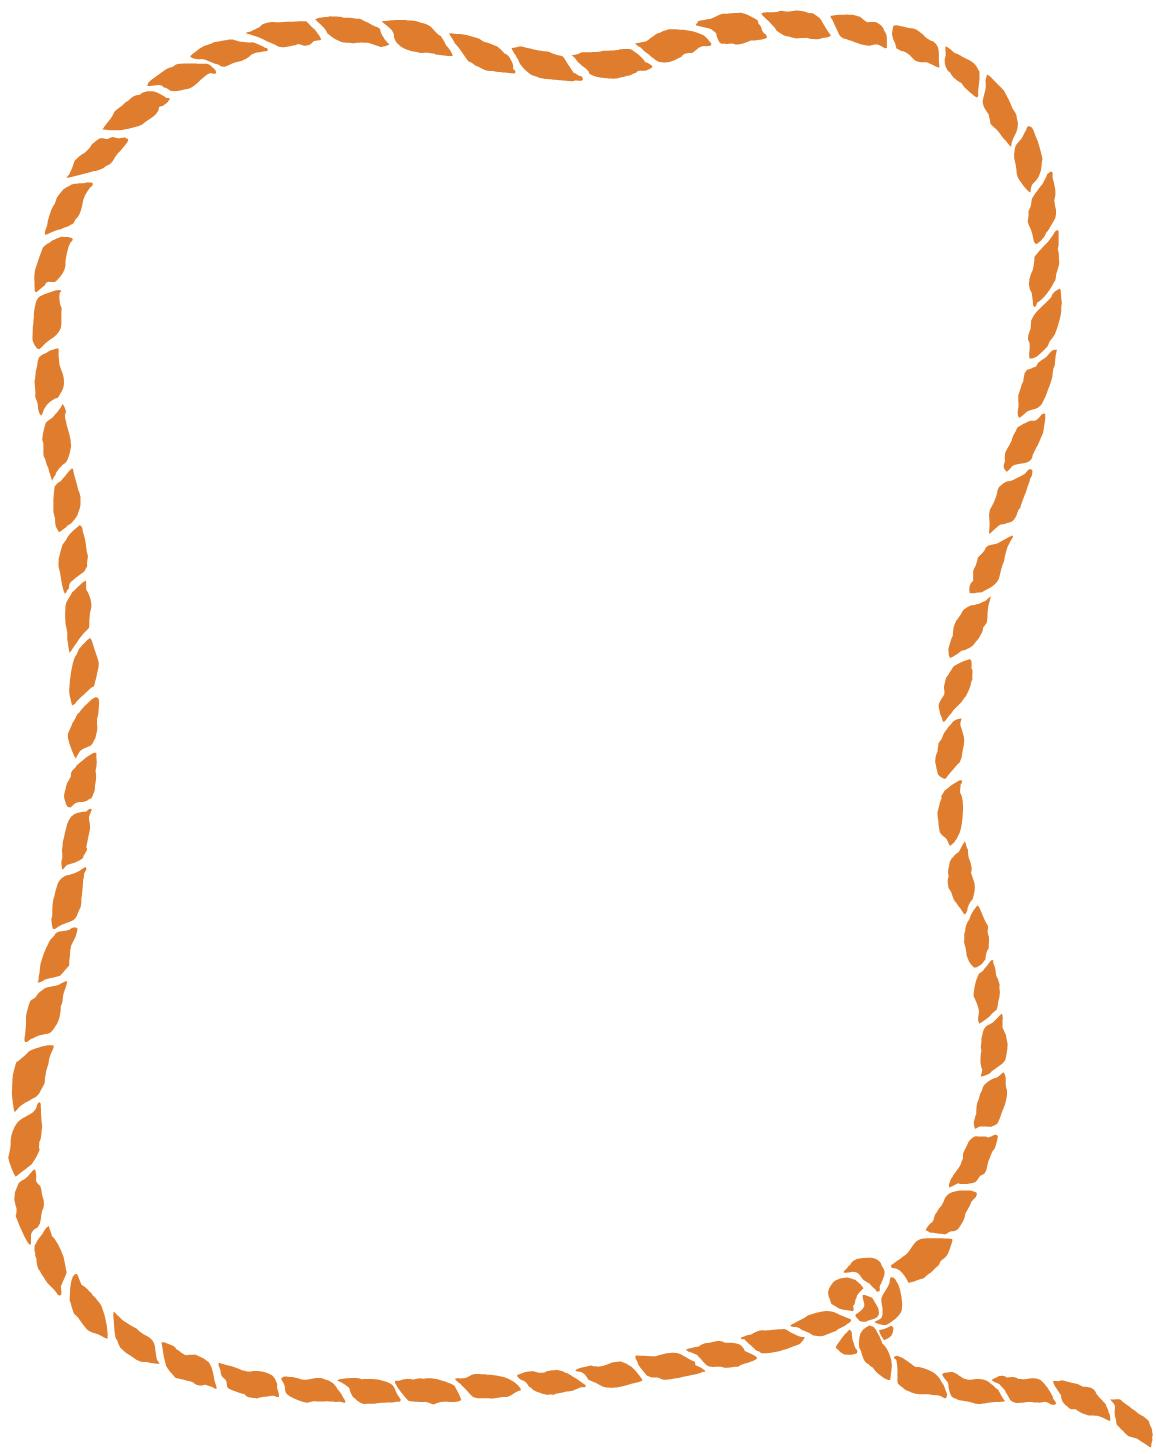 Western clipart rope image royalty free Free Rope Border Clipart, Download Free Clip Art, Free Clip ... image royalty free